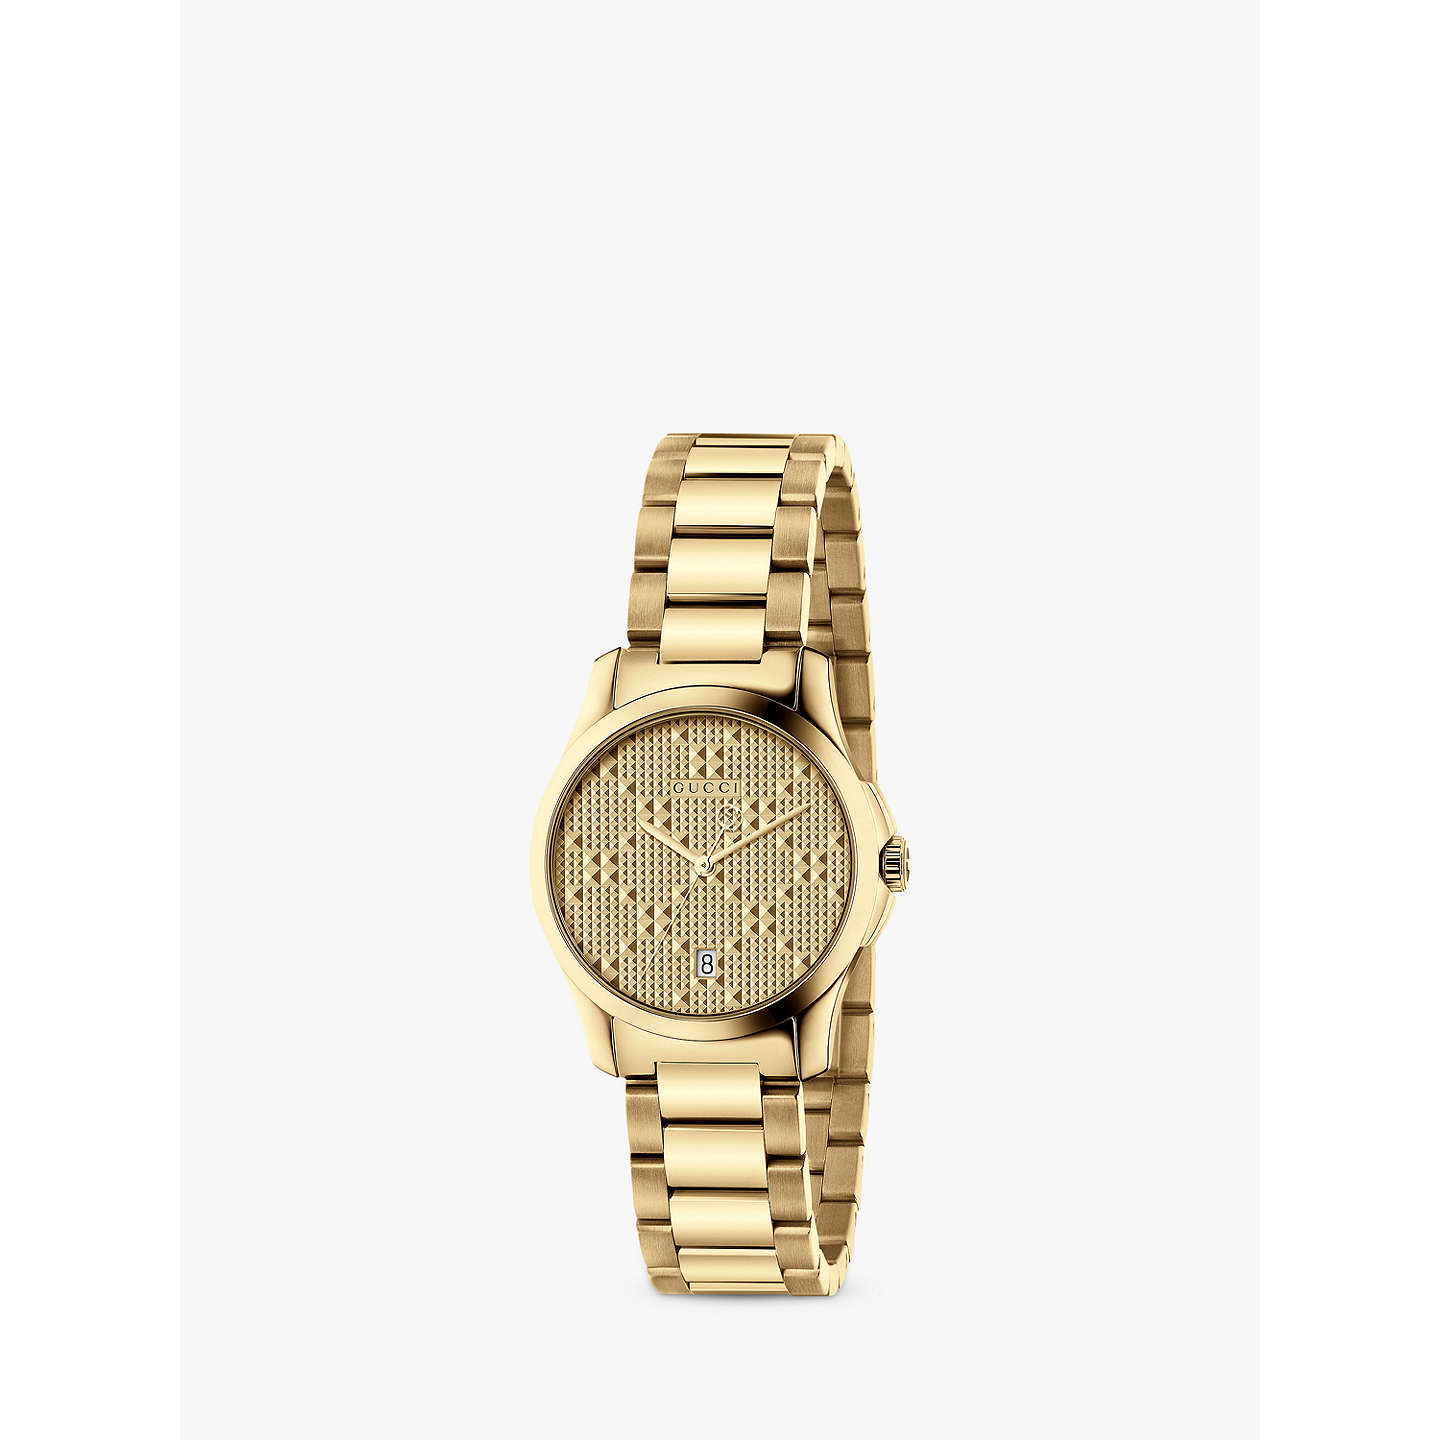 Gucci Ya126553 Women's G Timeless Date Bracelet Strap Watch, Gold by Gucci